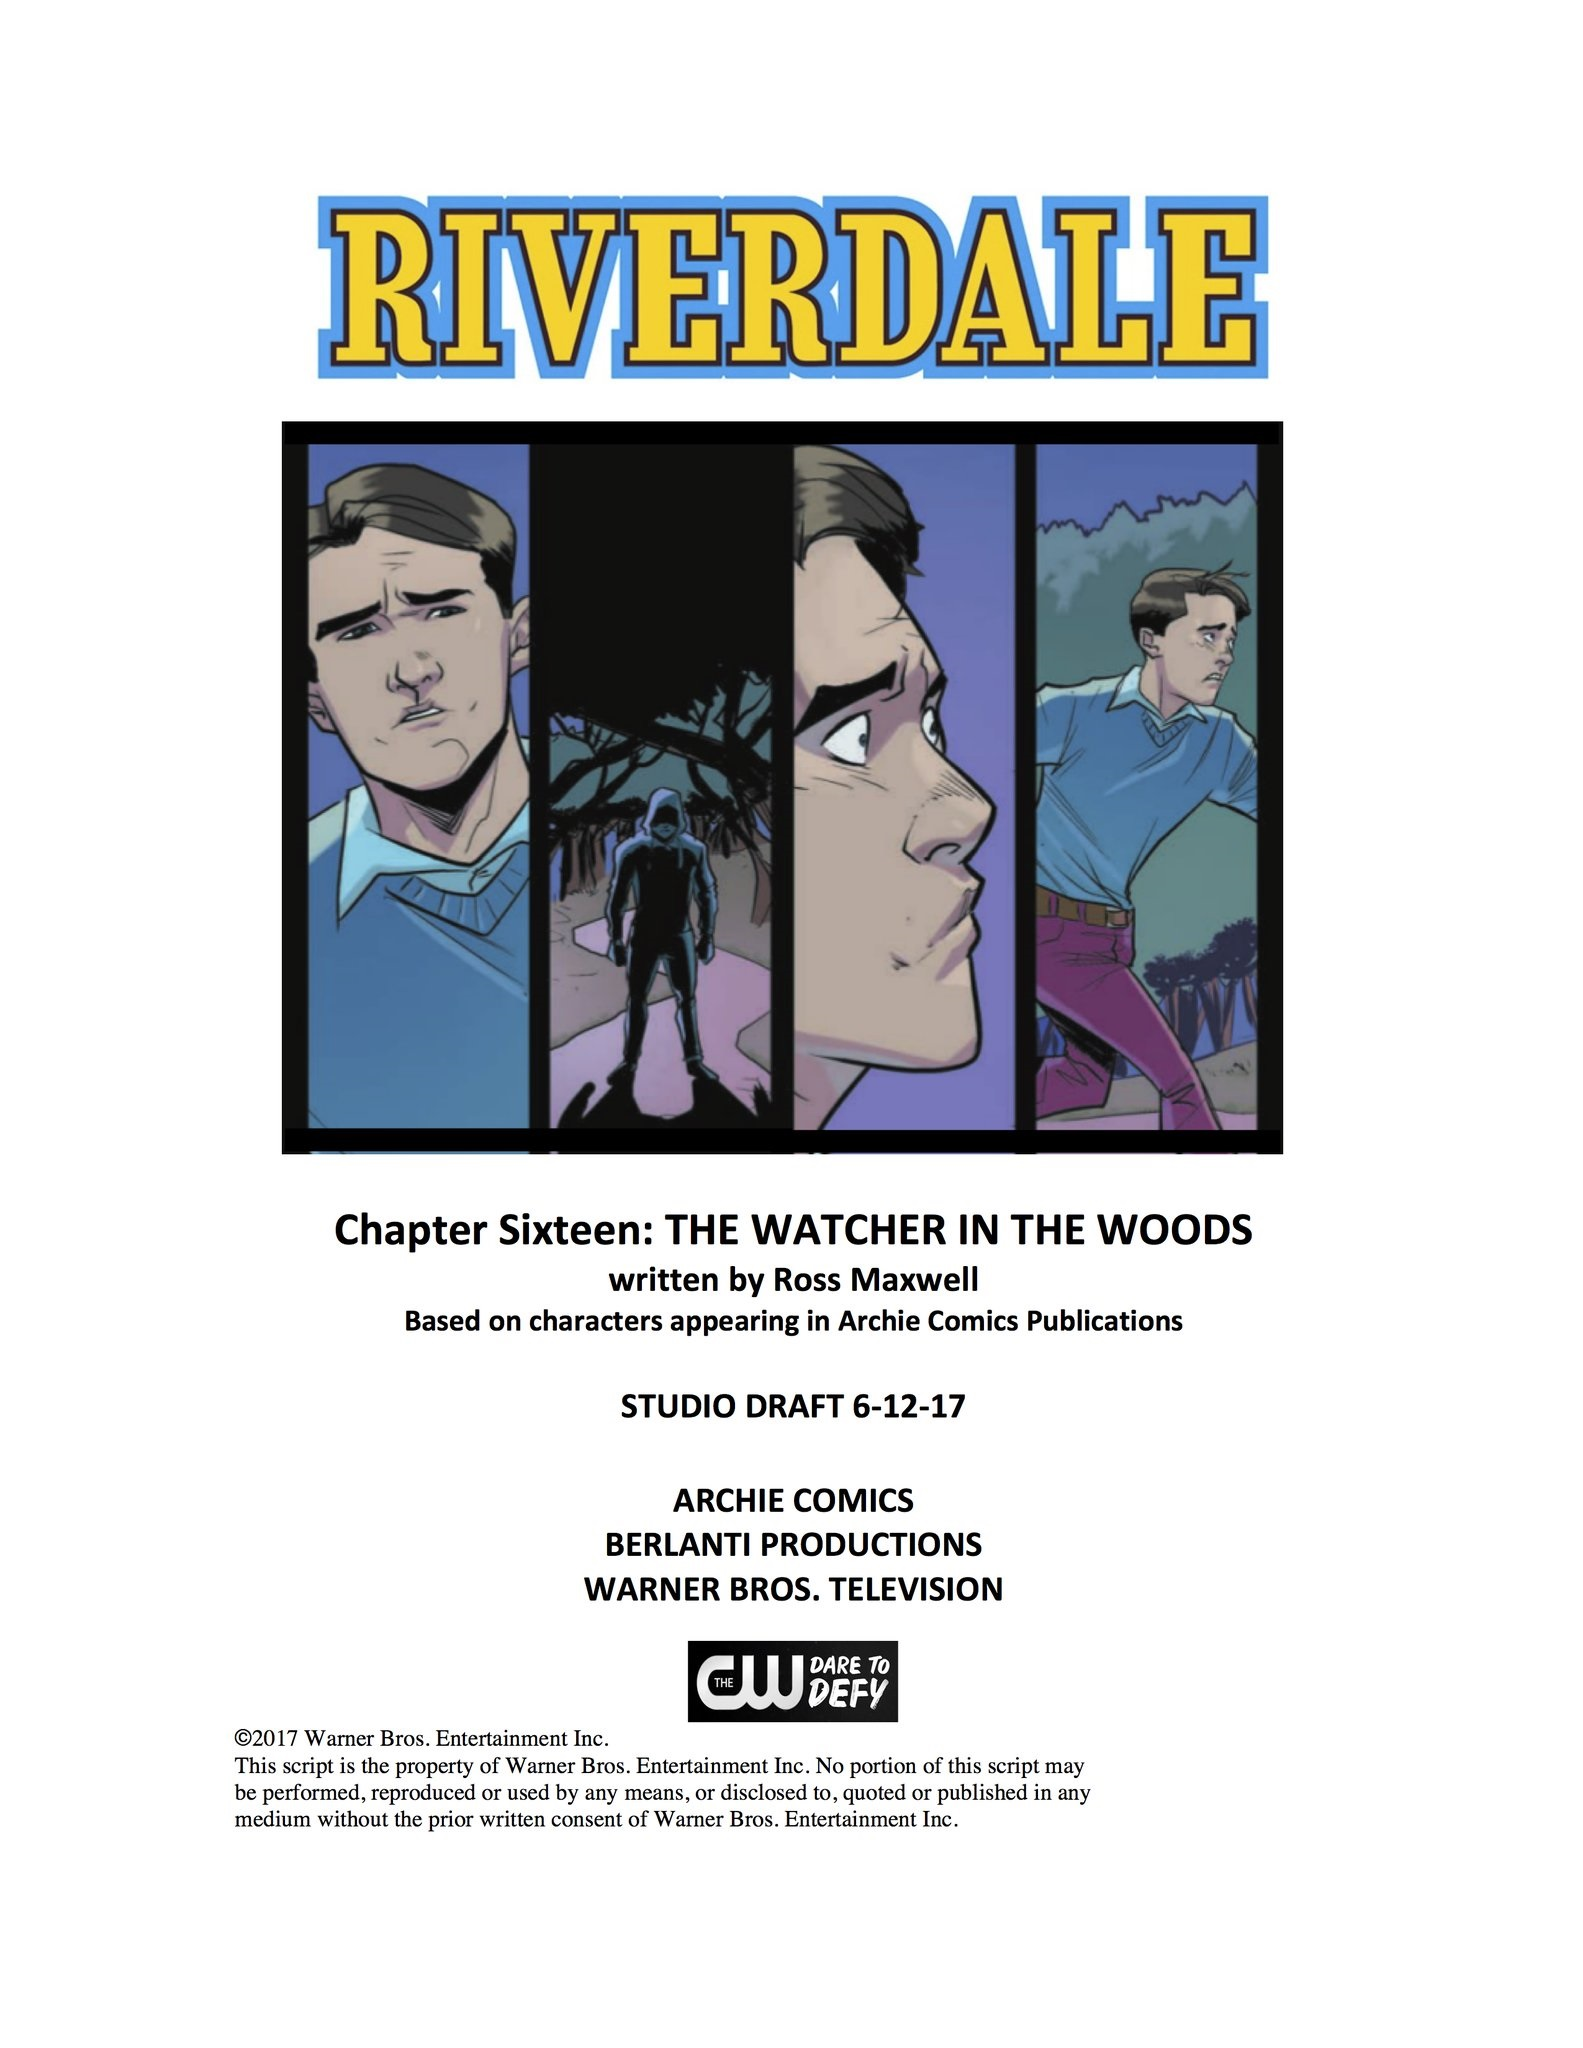 RIVERDALE S2E3 – THE MIGHTY CRUSADERS NETWORK